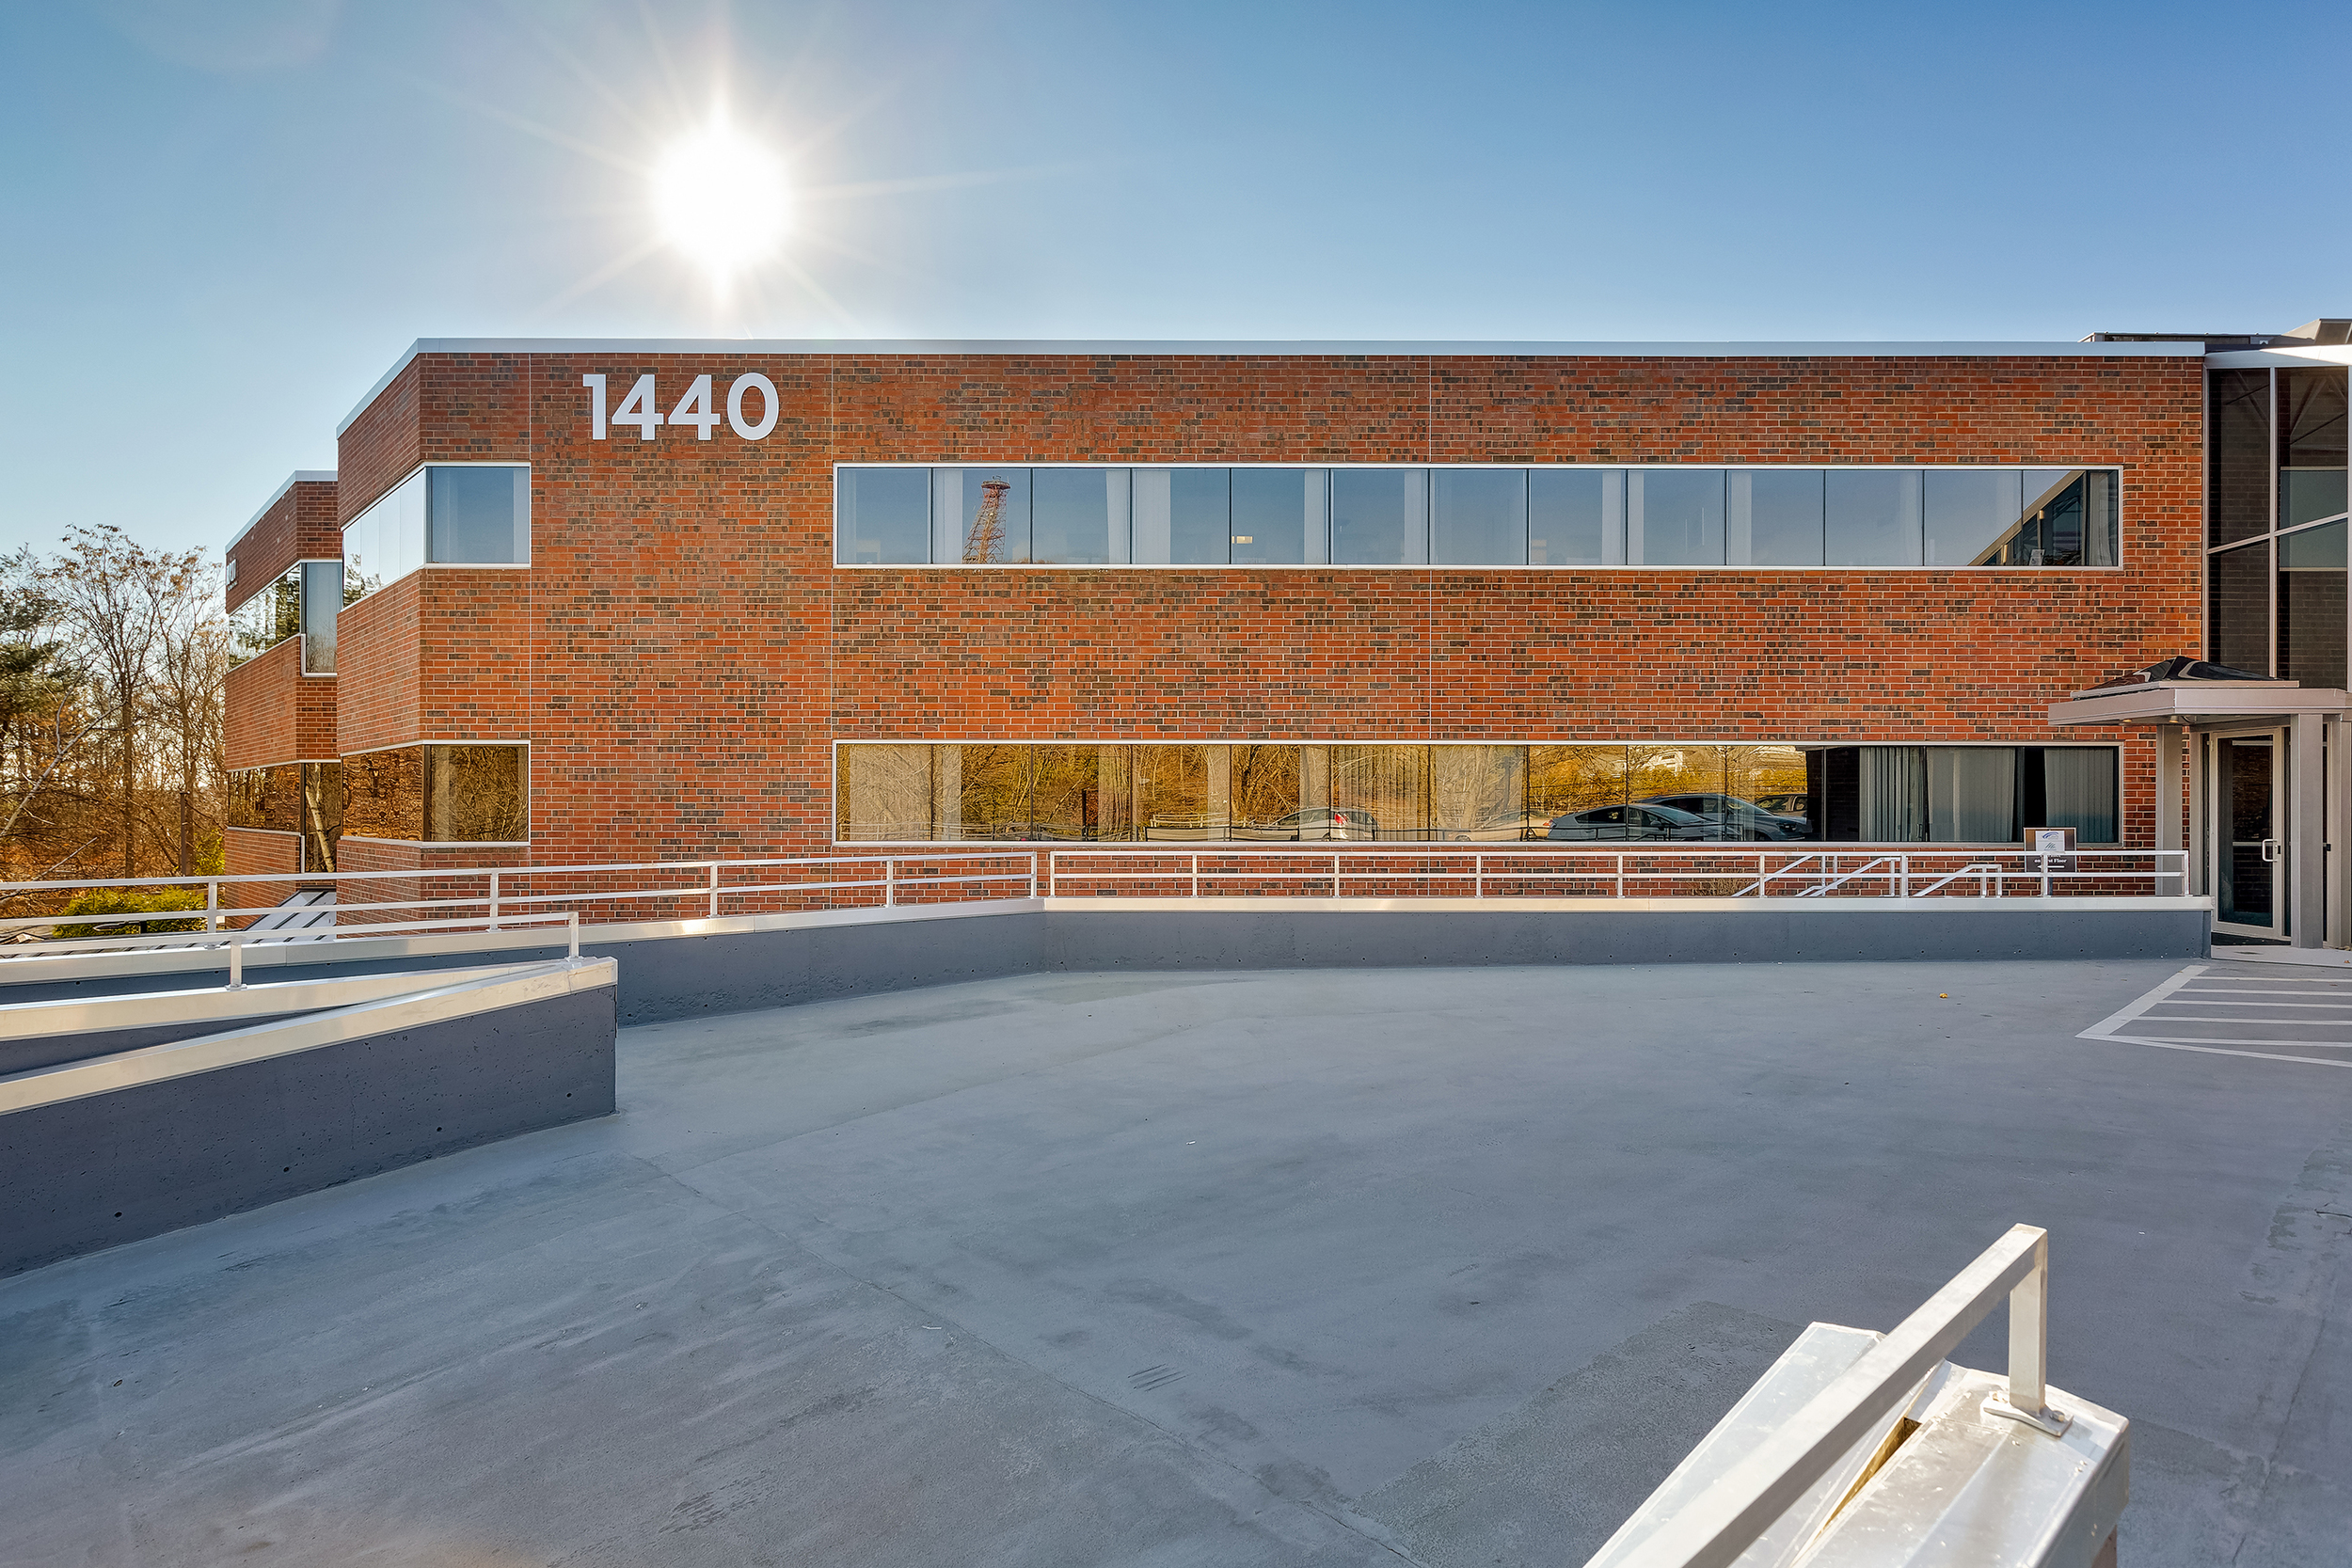 New window line and complementing parking deck modernized railings